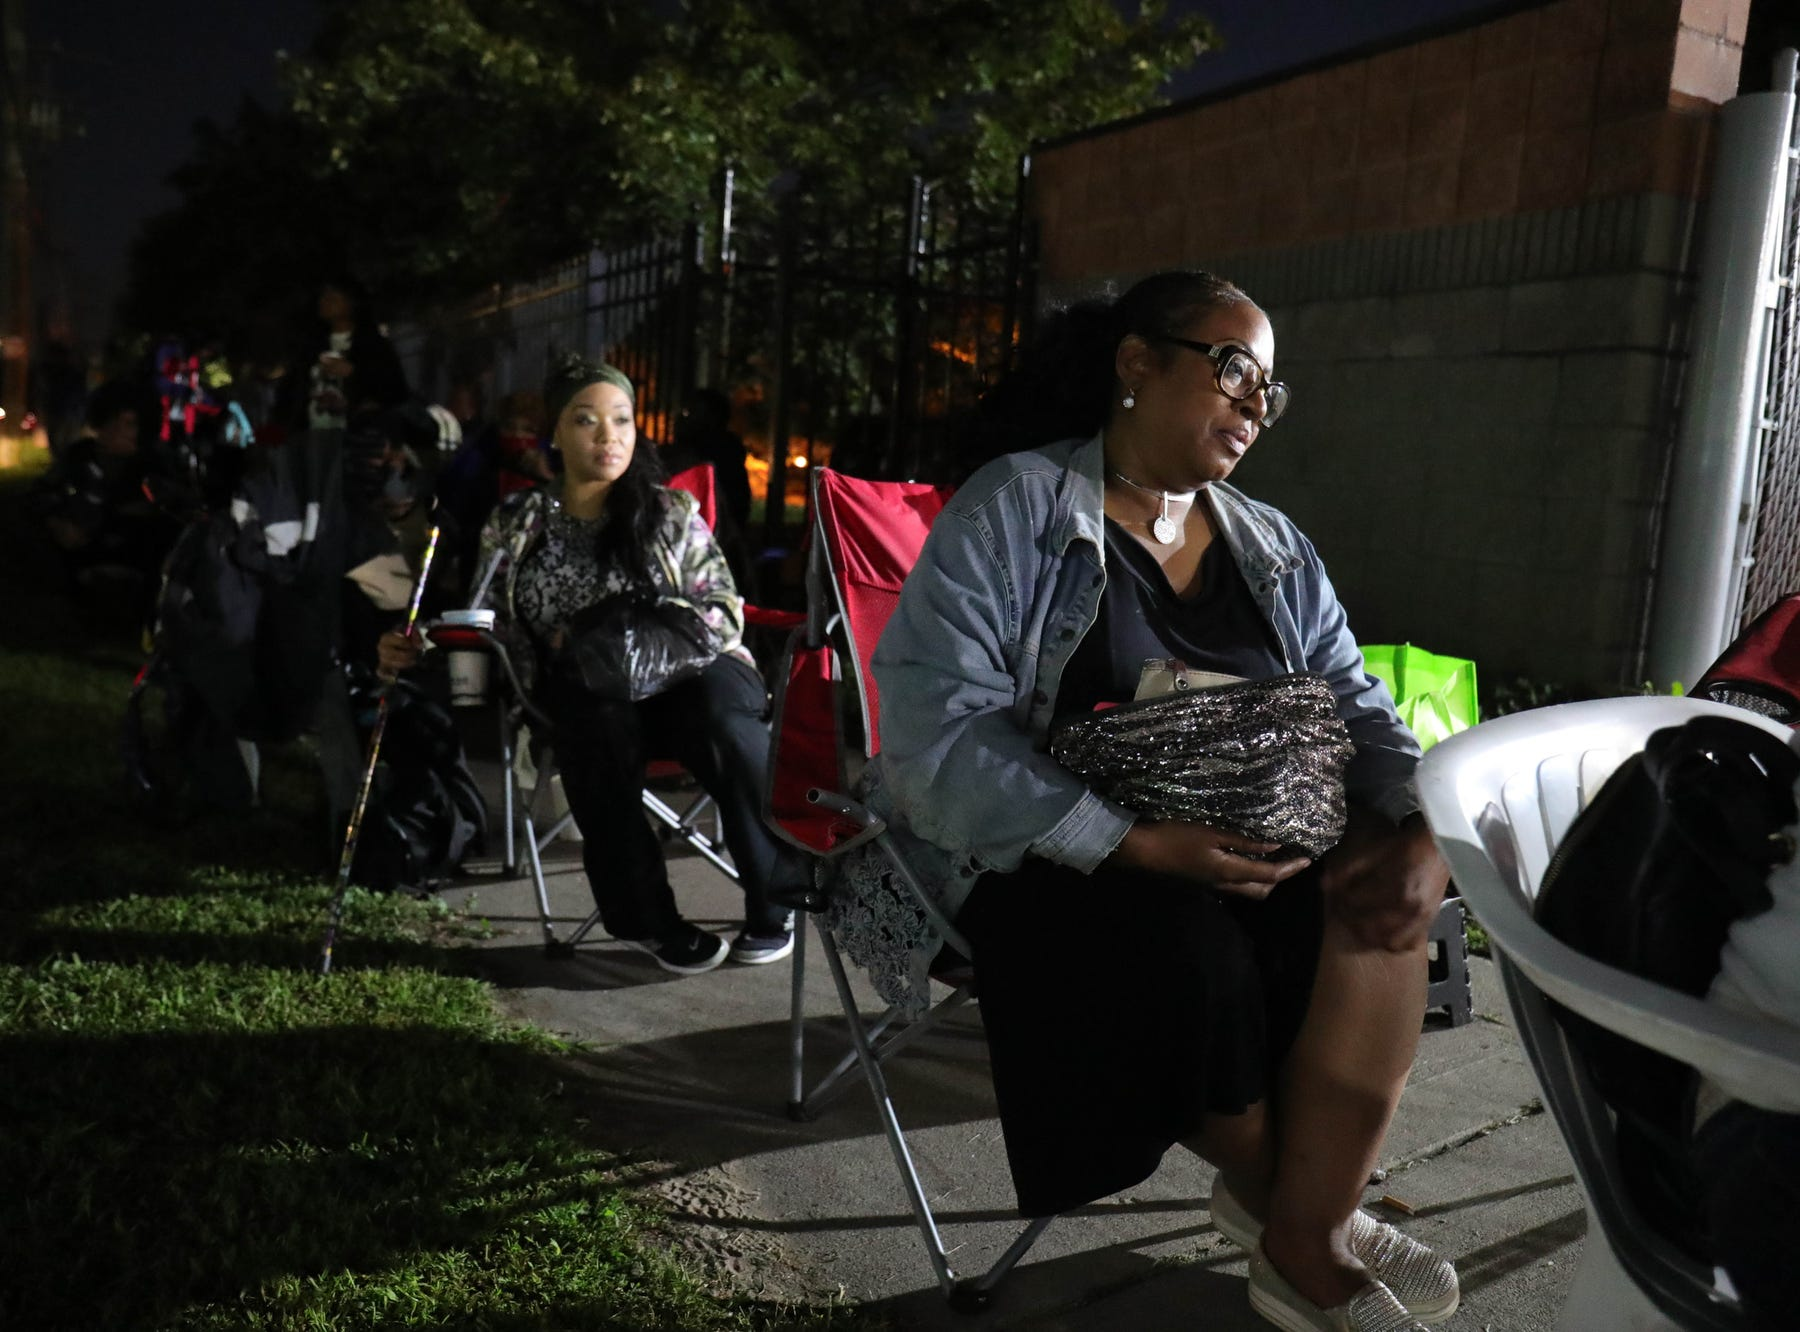 Fans wait in line to attend the funeral of Aretha Frnklin at Greater Grace Temple  in Detroit Mich. Friday, August 31, 2018.